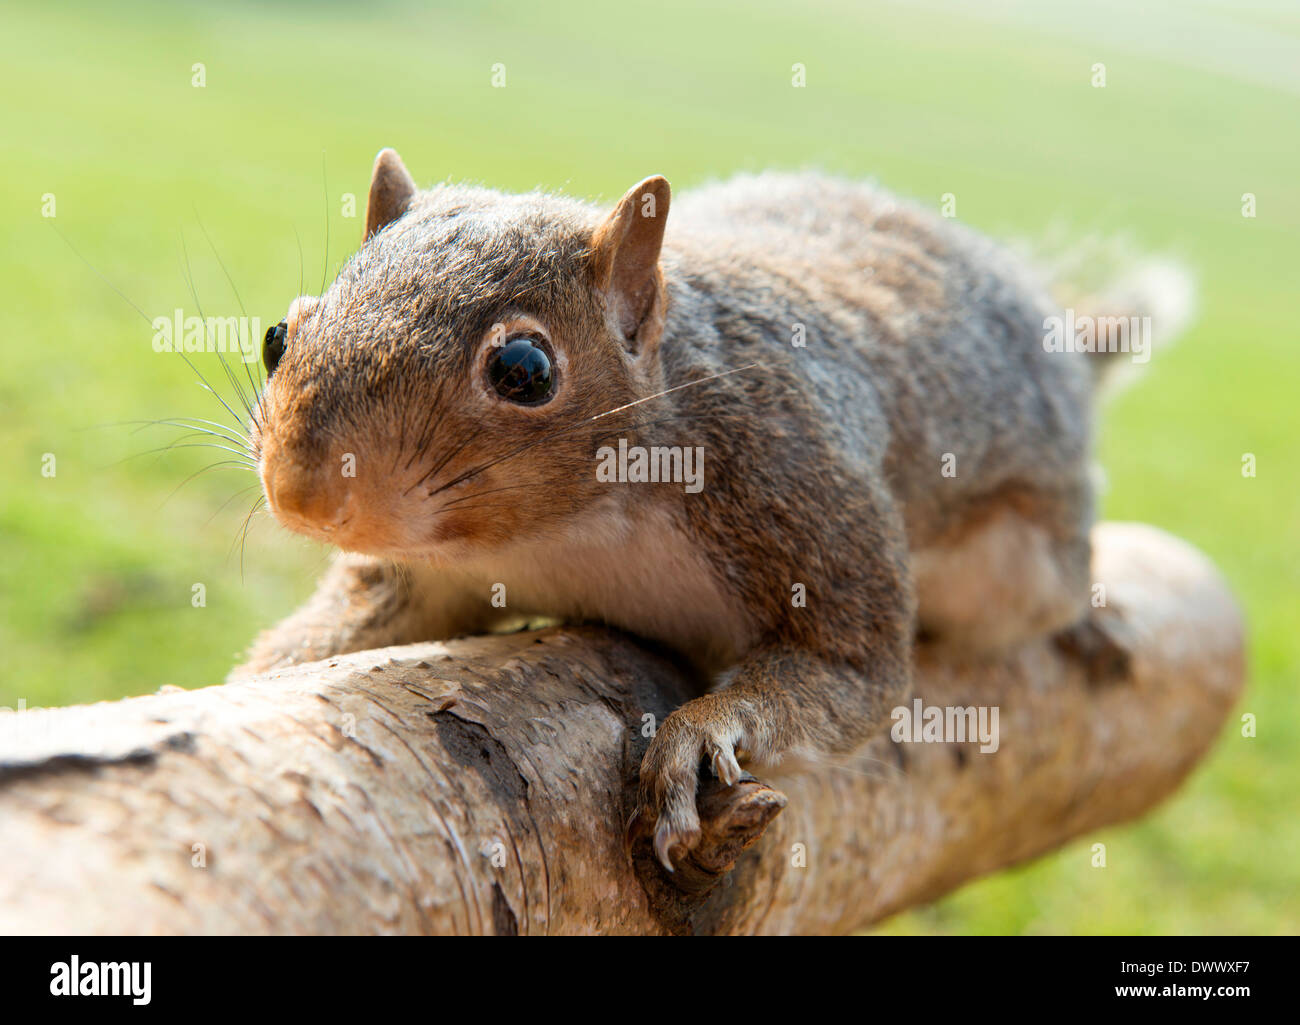 A stuffed squirrel mounted onto a log. Stock Photo